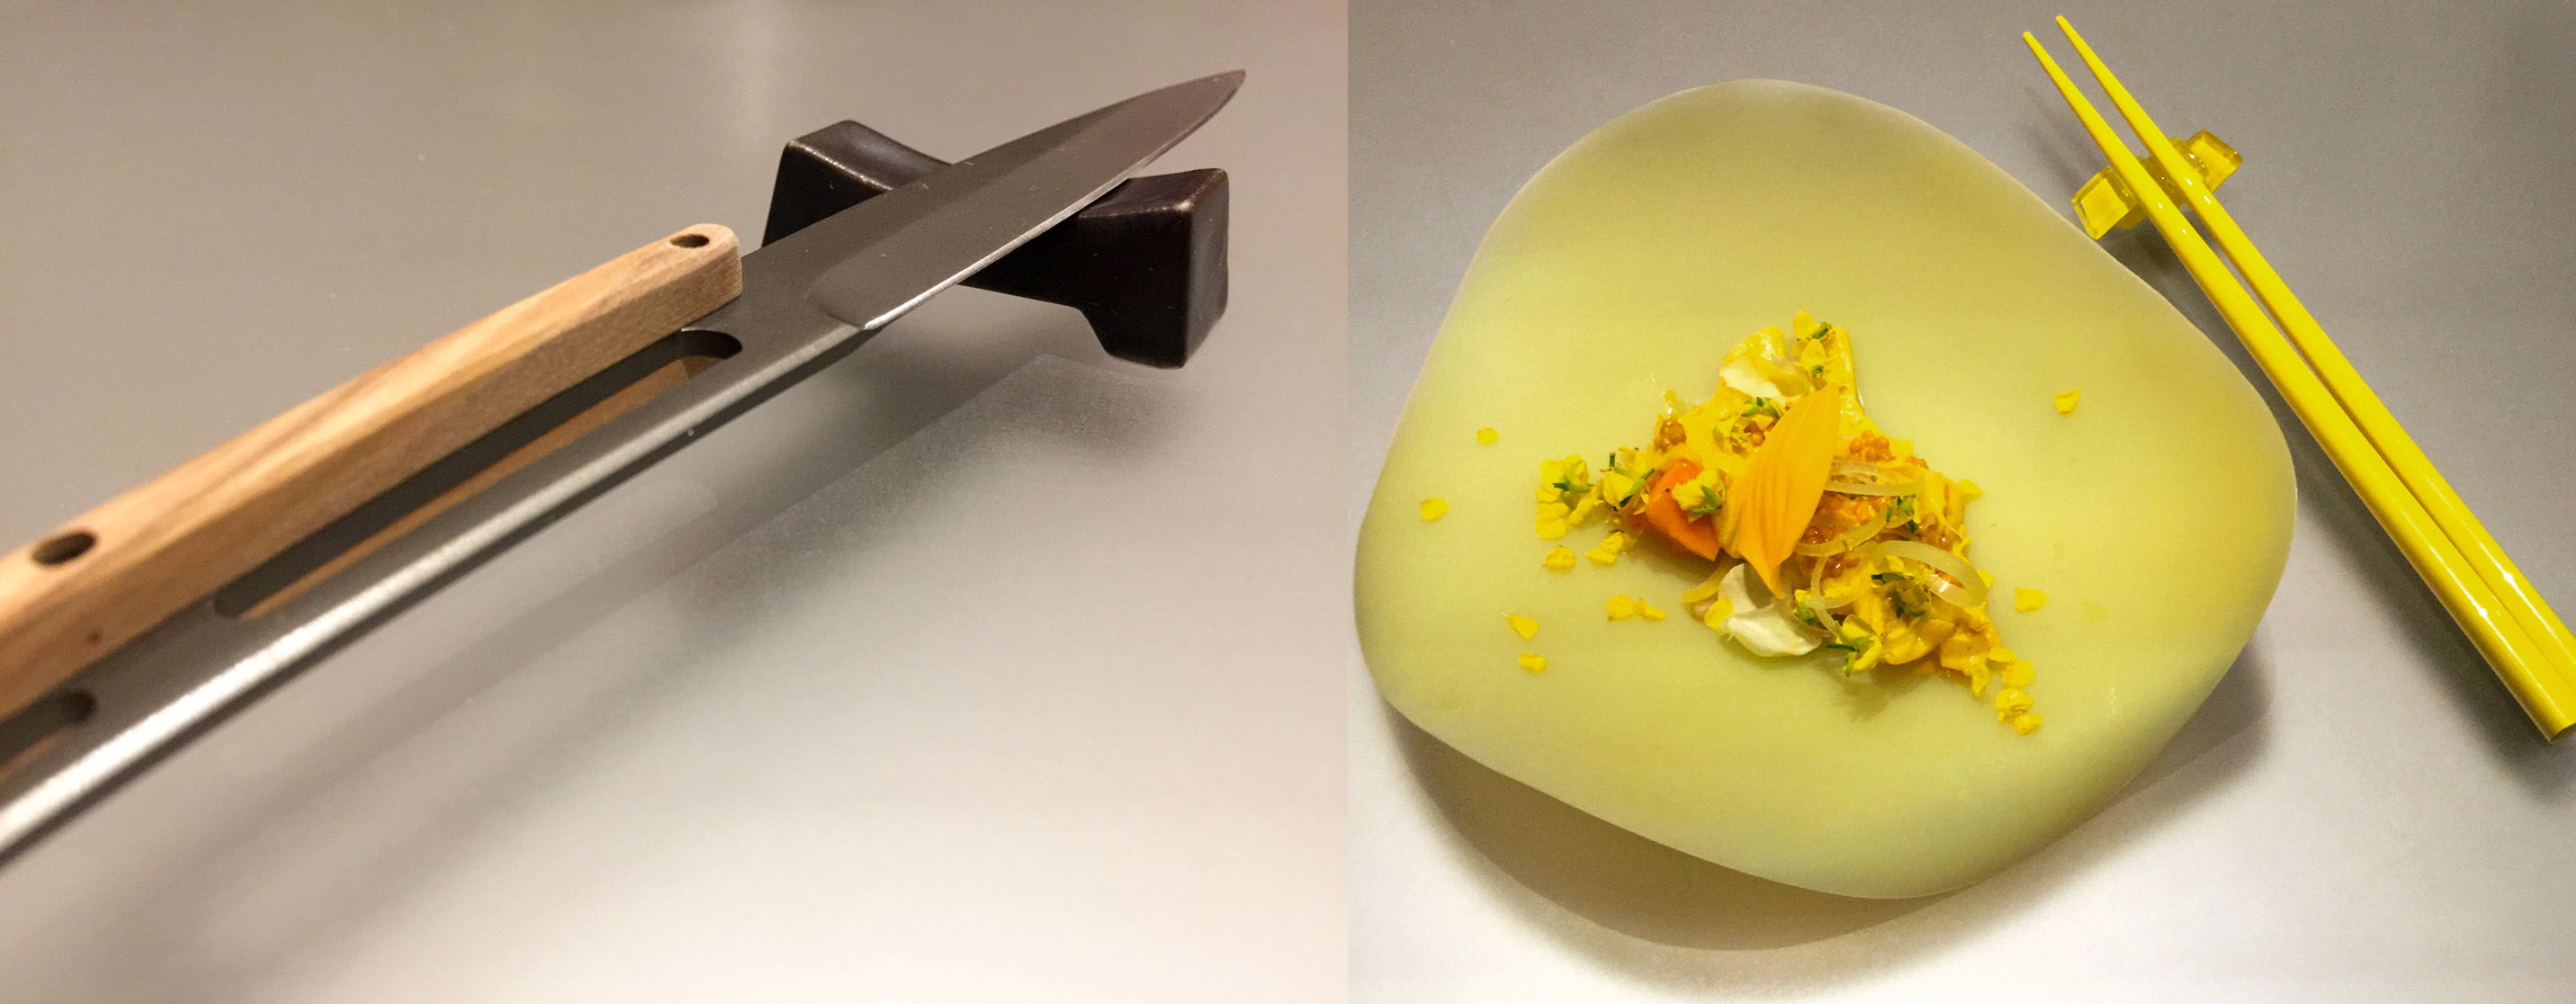 Steak knife and 'Yellow', Alinea, Chicago